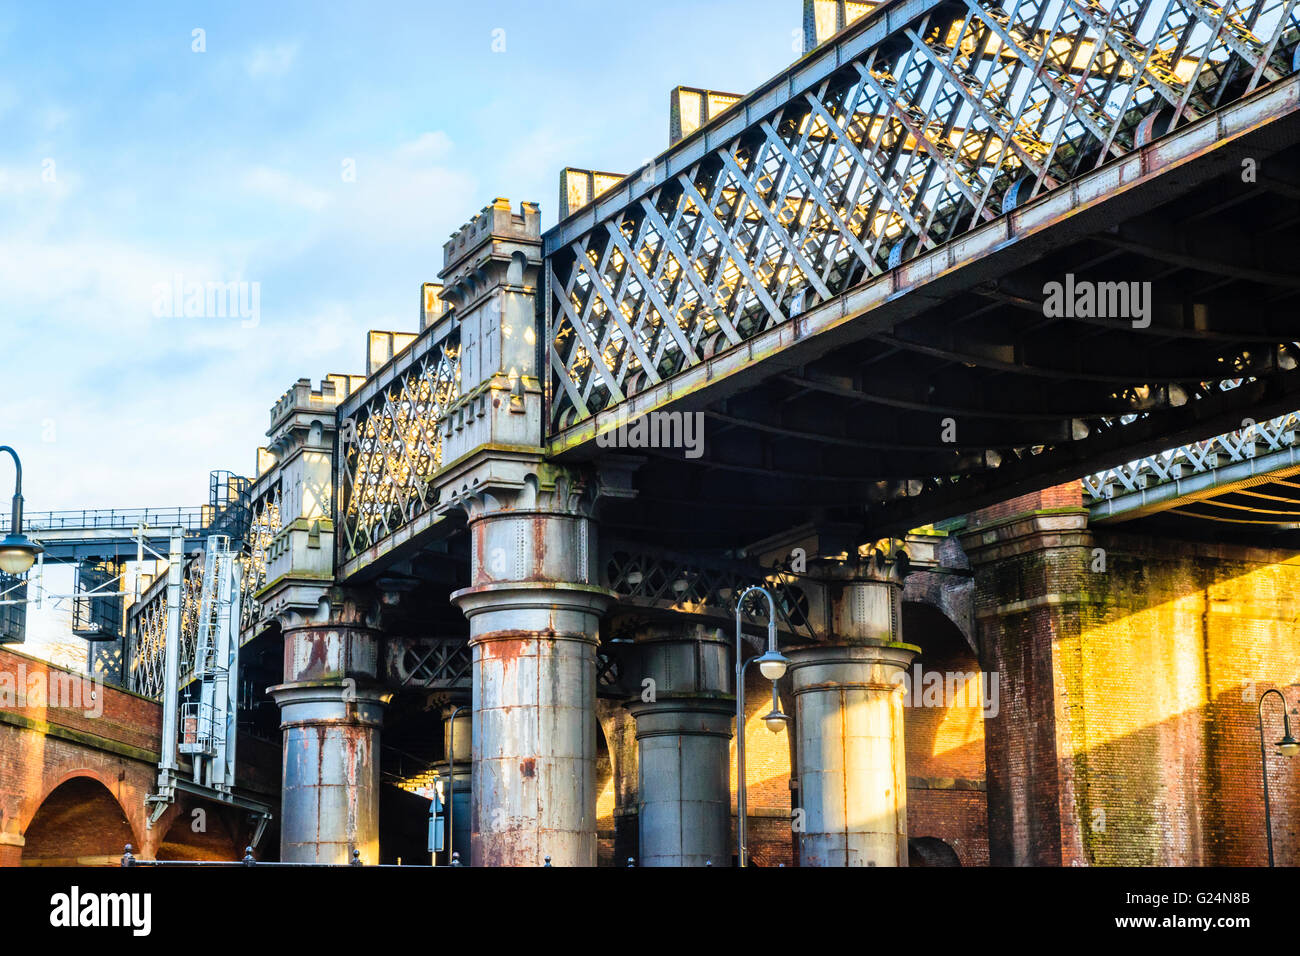 Railway bridges in the regeneration area of Castlefield Manchester - Stock Image